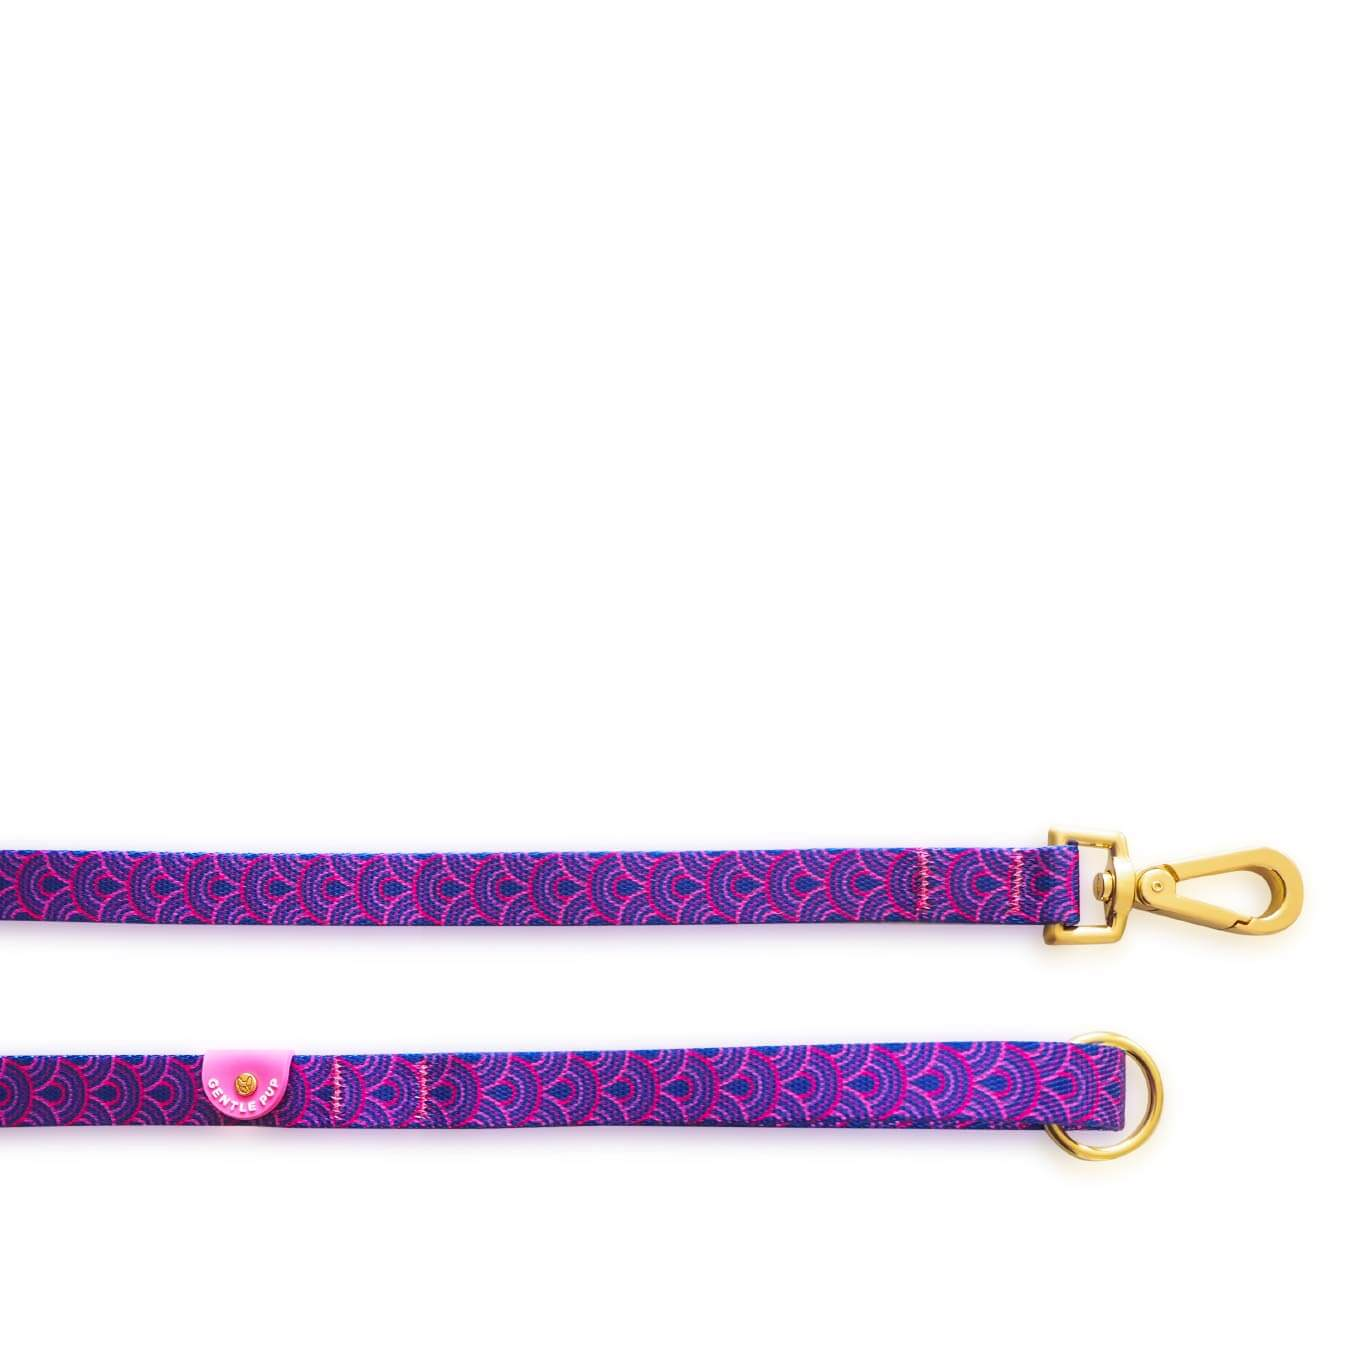 Gentle Pup Leash | Piper Pink - Vanillapup Online Pet Store